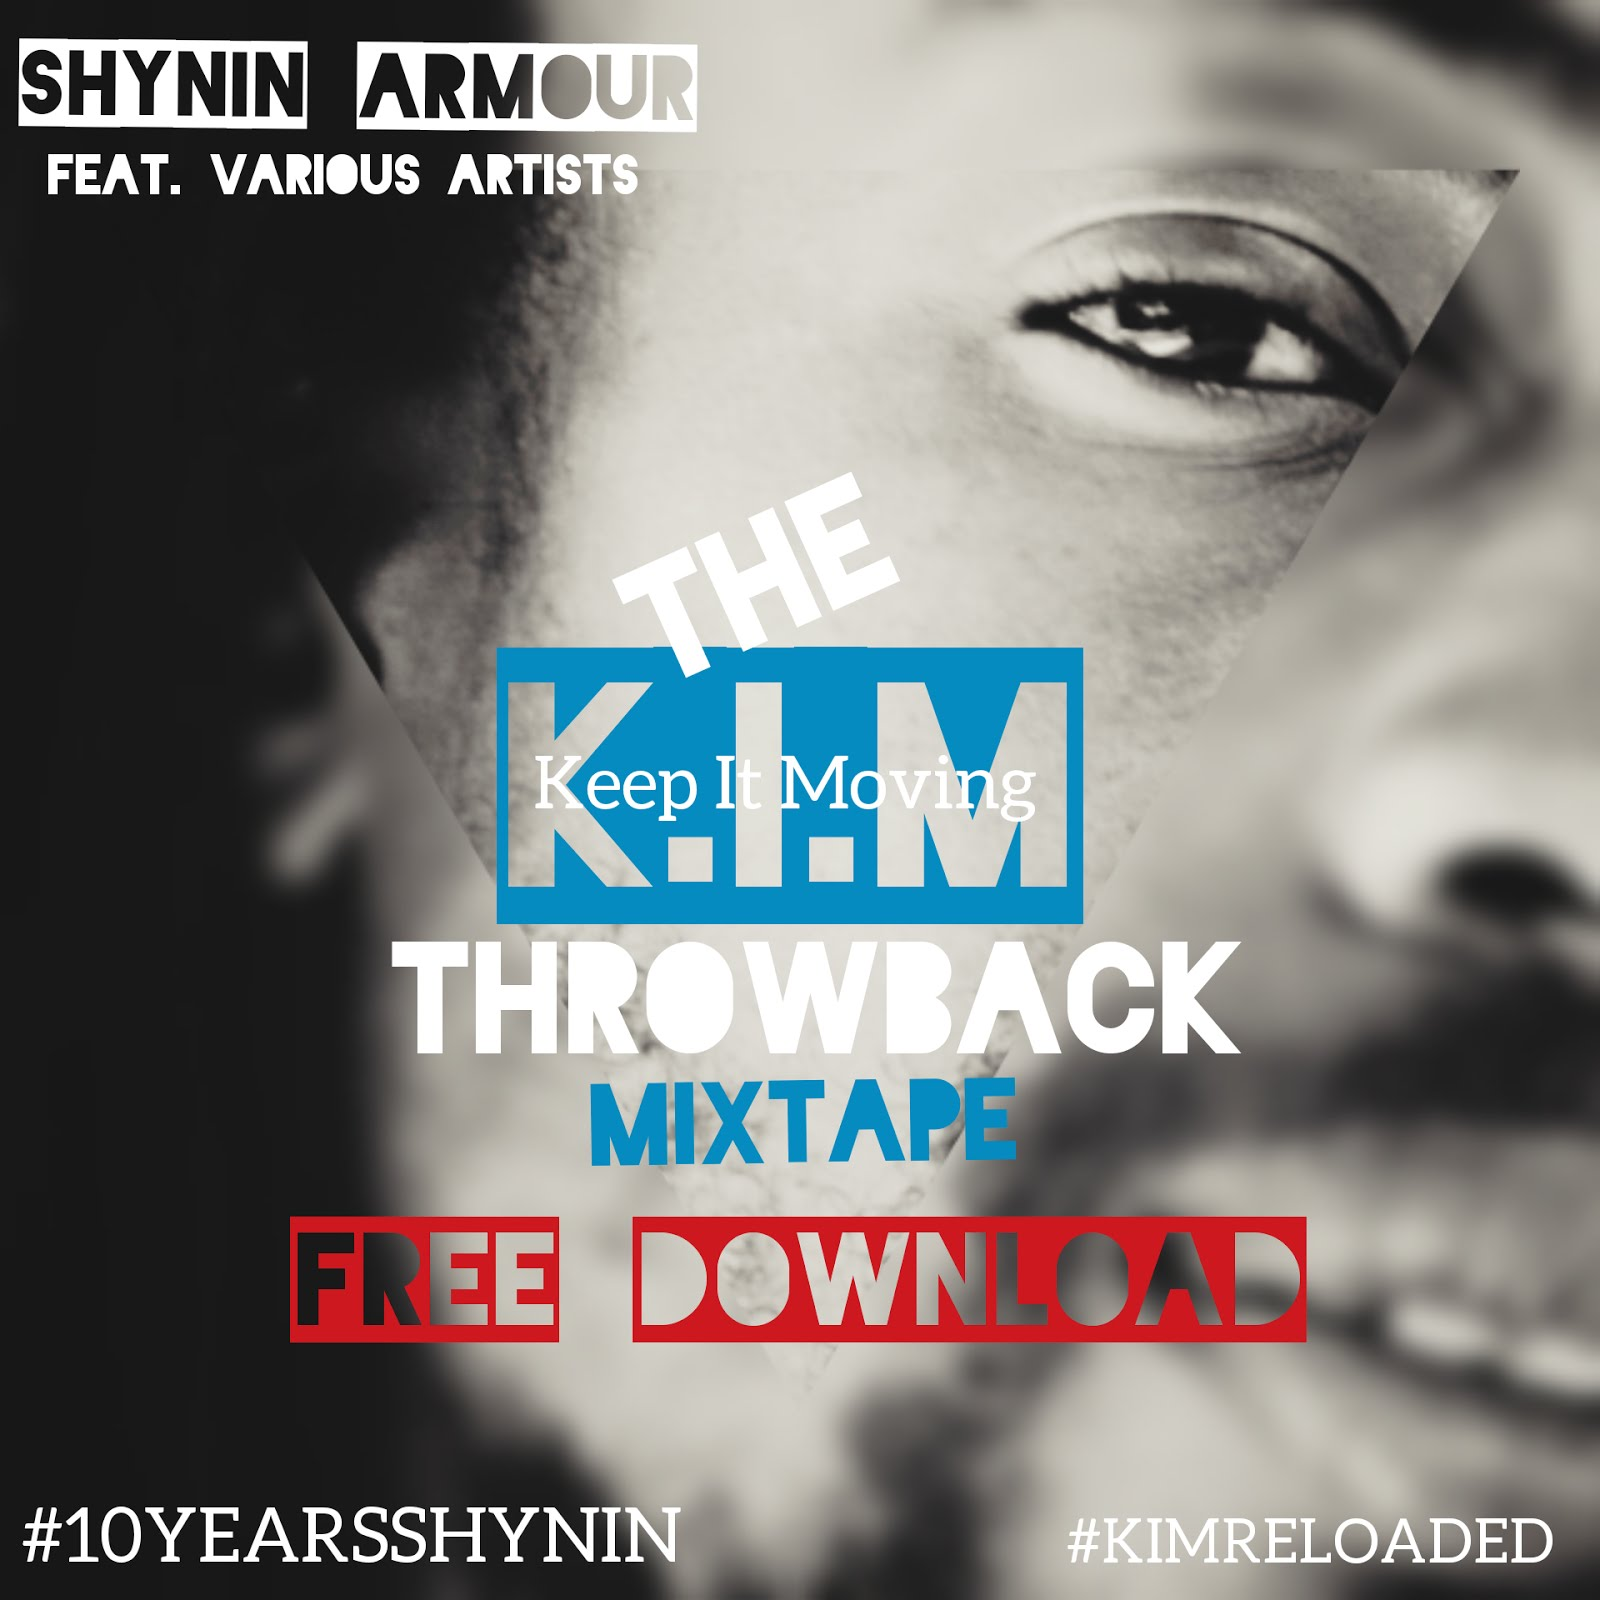 DOWNLOAD THE K.I.M MIXTAPE